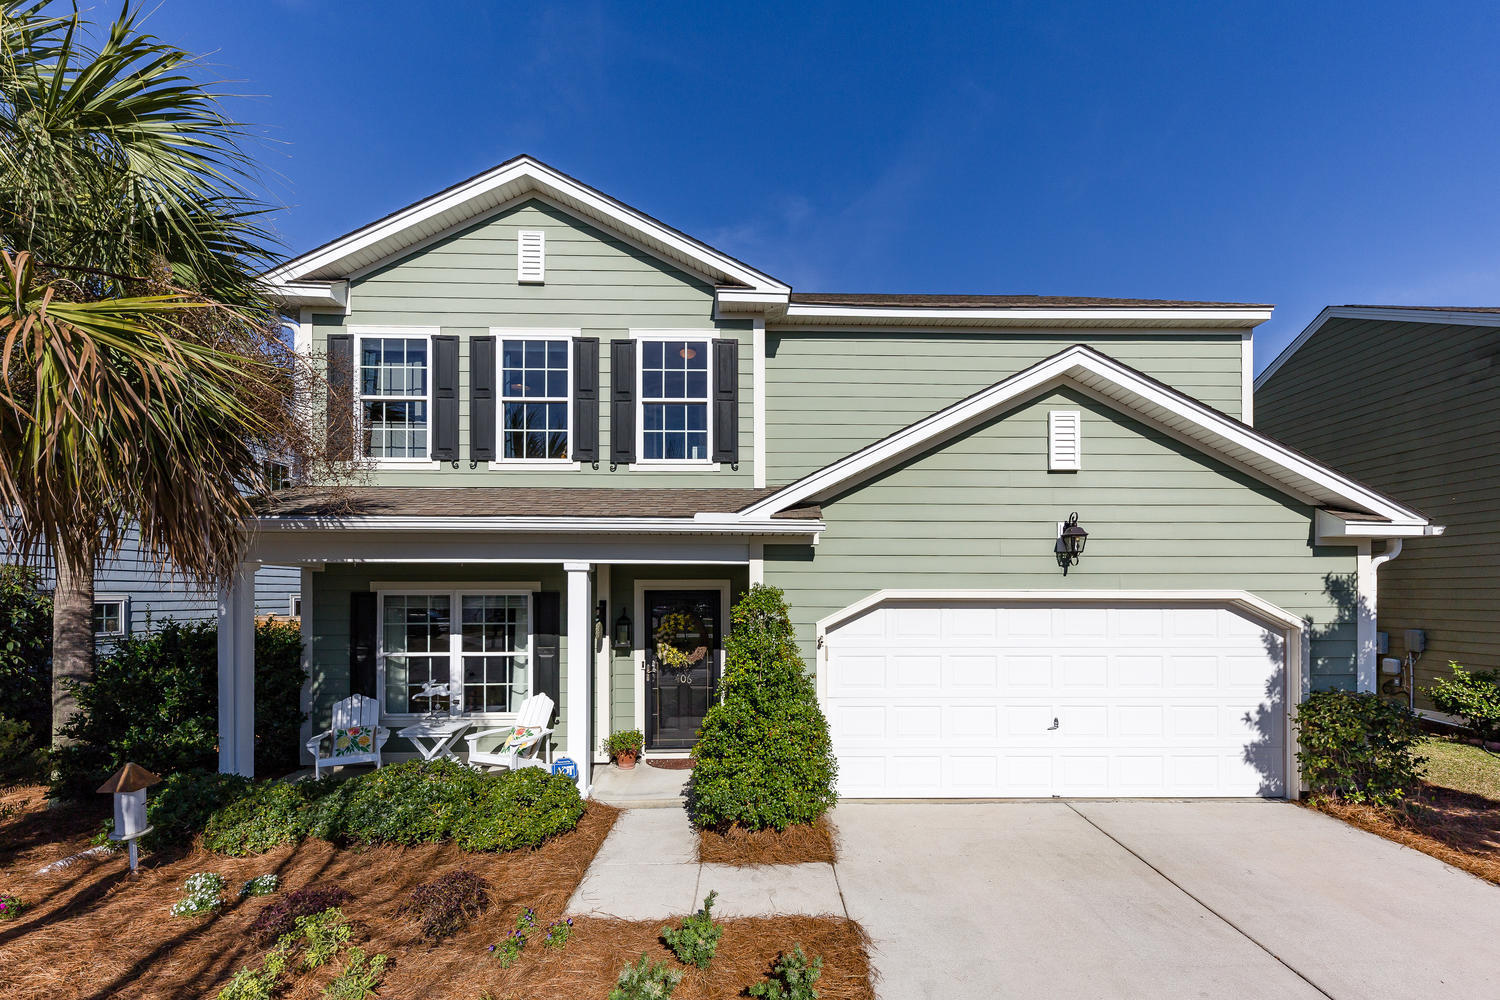 406 Nelliefield Trail Wando, SC 29492